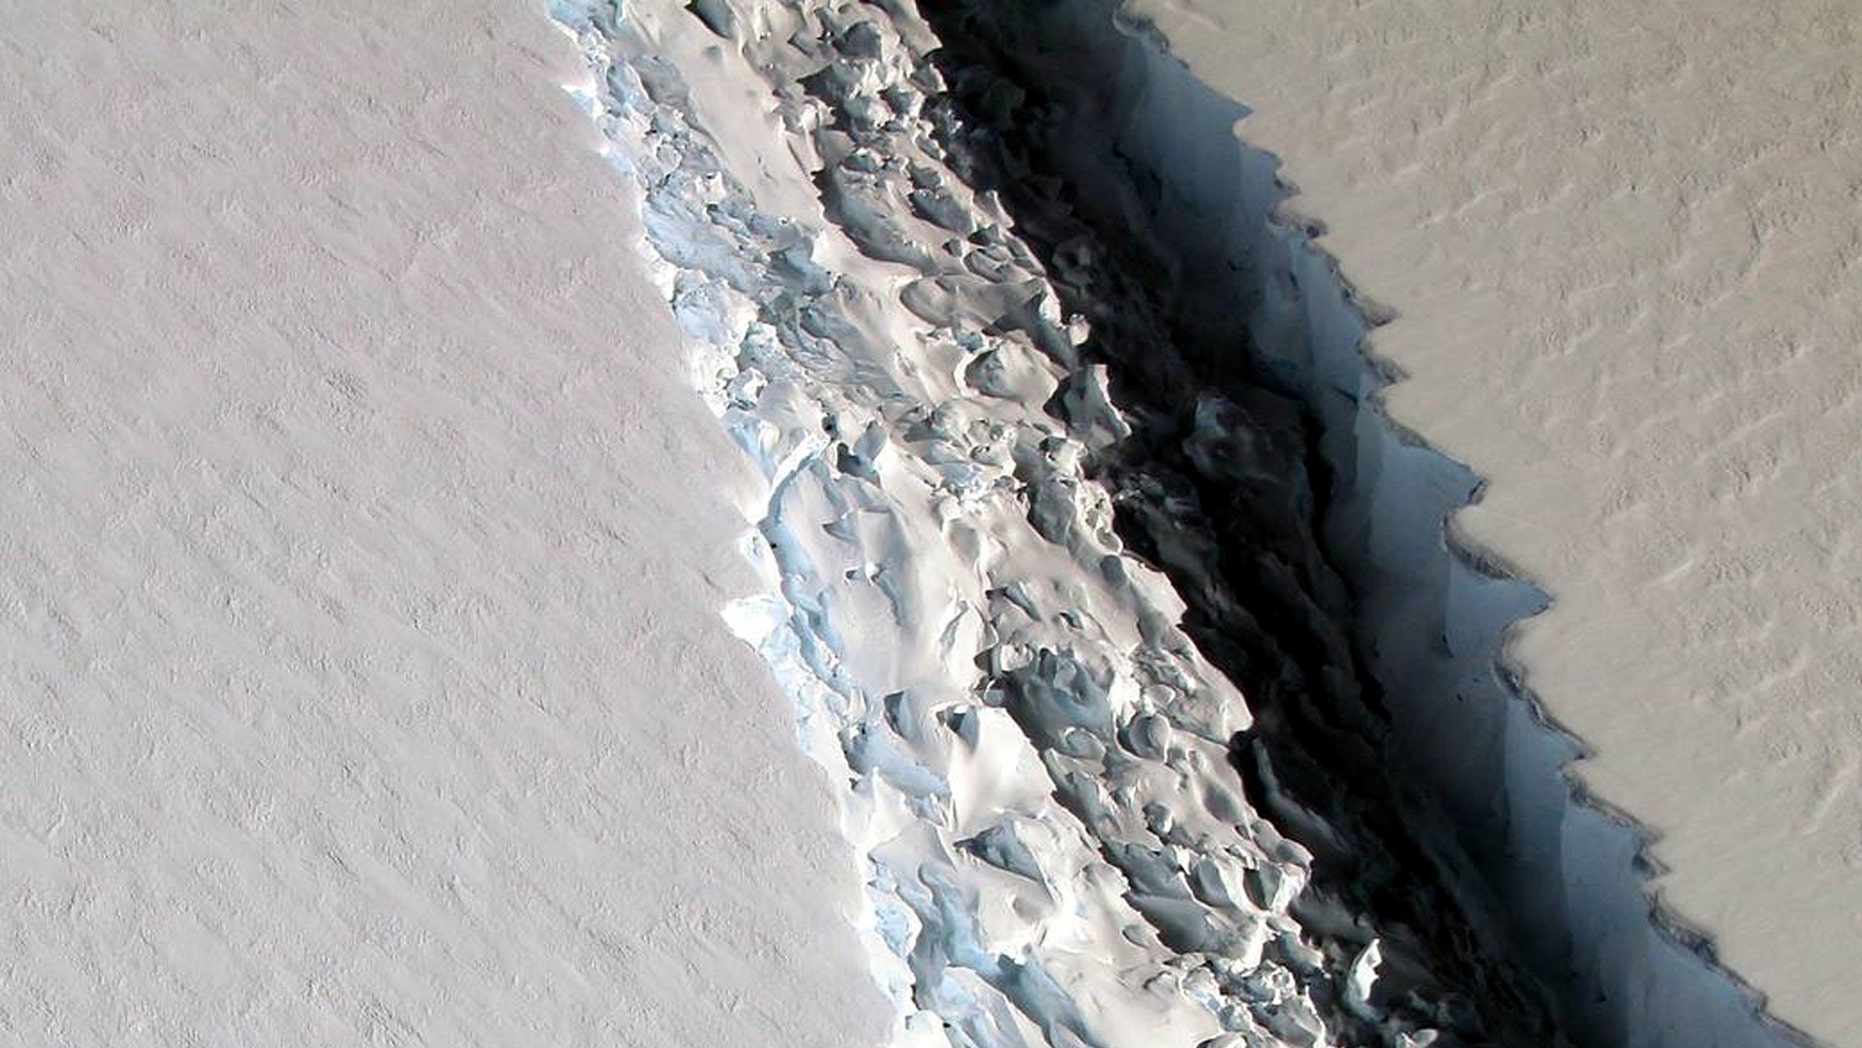 File photo: An oblique view of a massive rift in the Antarctic Peninsula's Larsen C ice shelf is shown in this November 10, 2016 photo taken by scientists on NASA's IceBridge mission in Antarctica. (Courtesy John Sonntag/NASA/Handout via REUTERS)